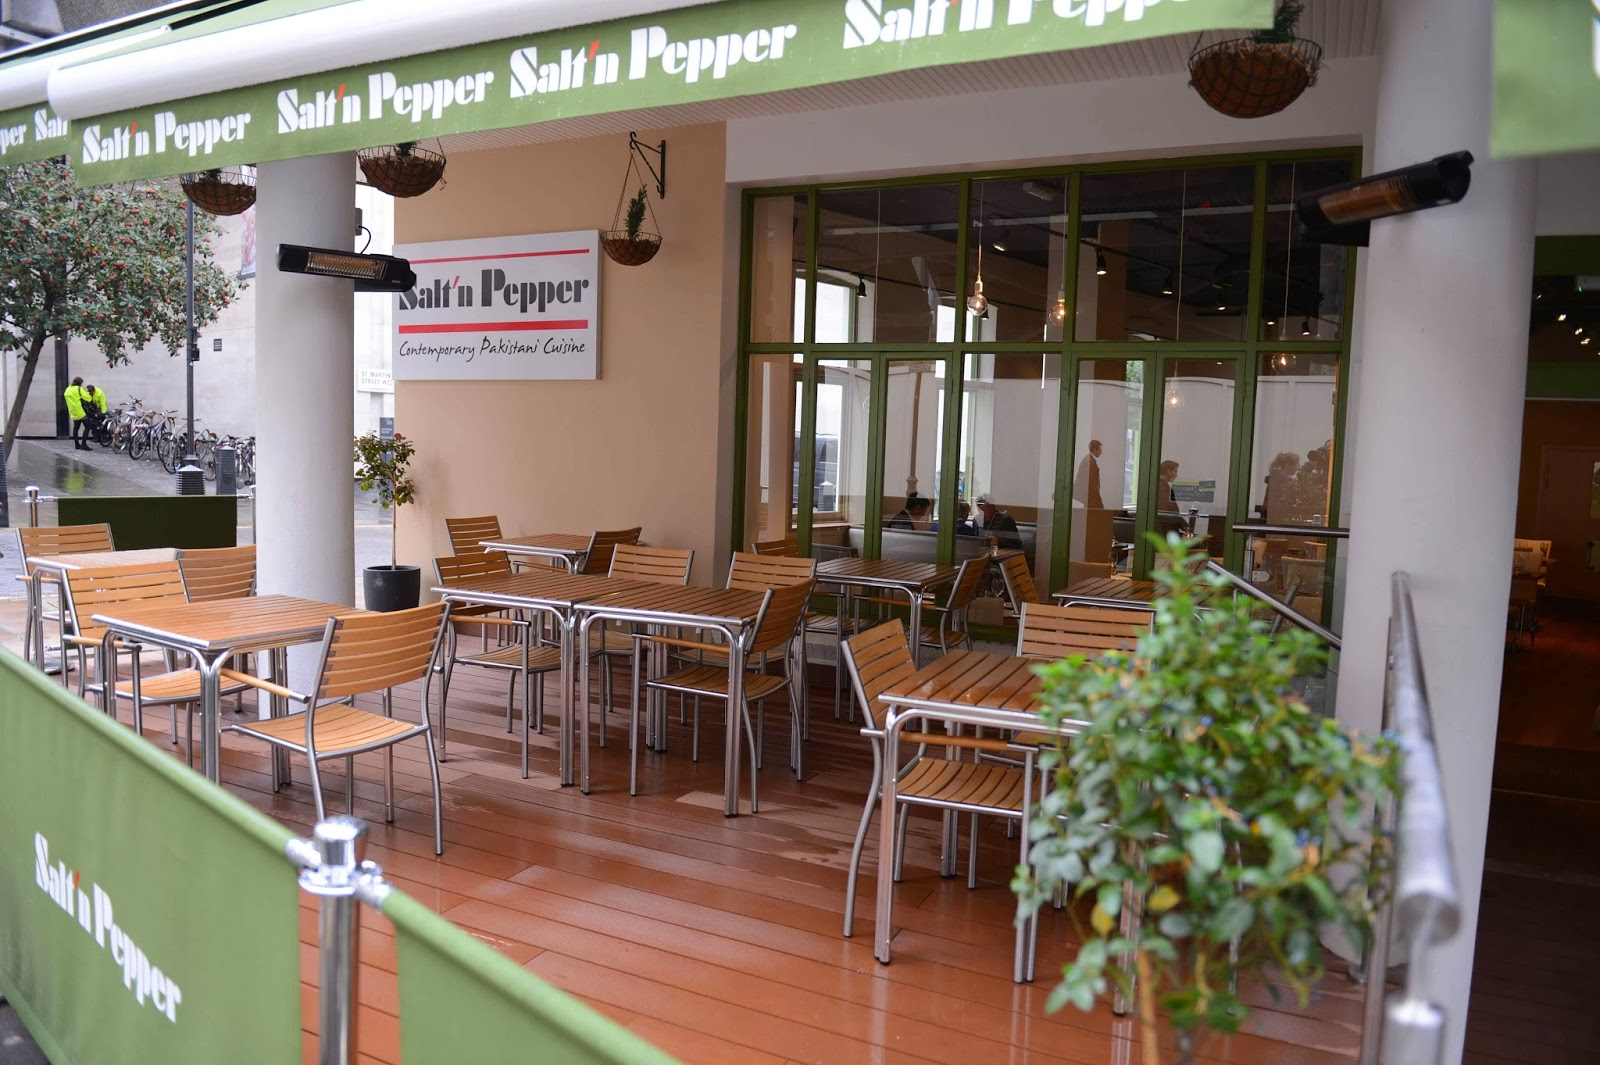 Salt'n Pepper Restaurant in London serving contemporary Pakistani cuisine